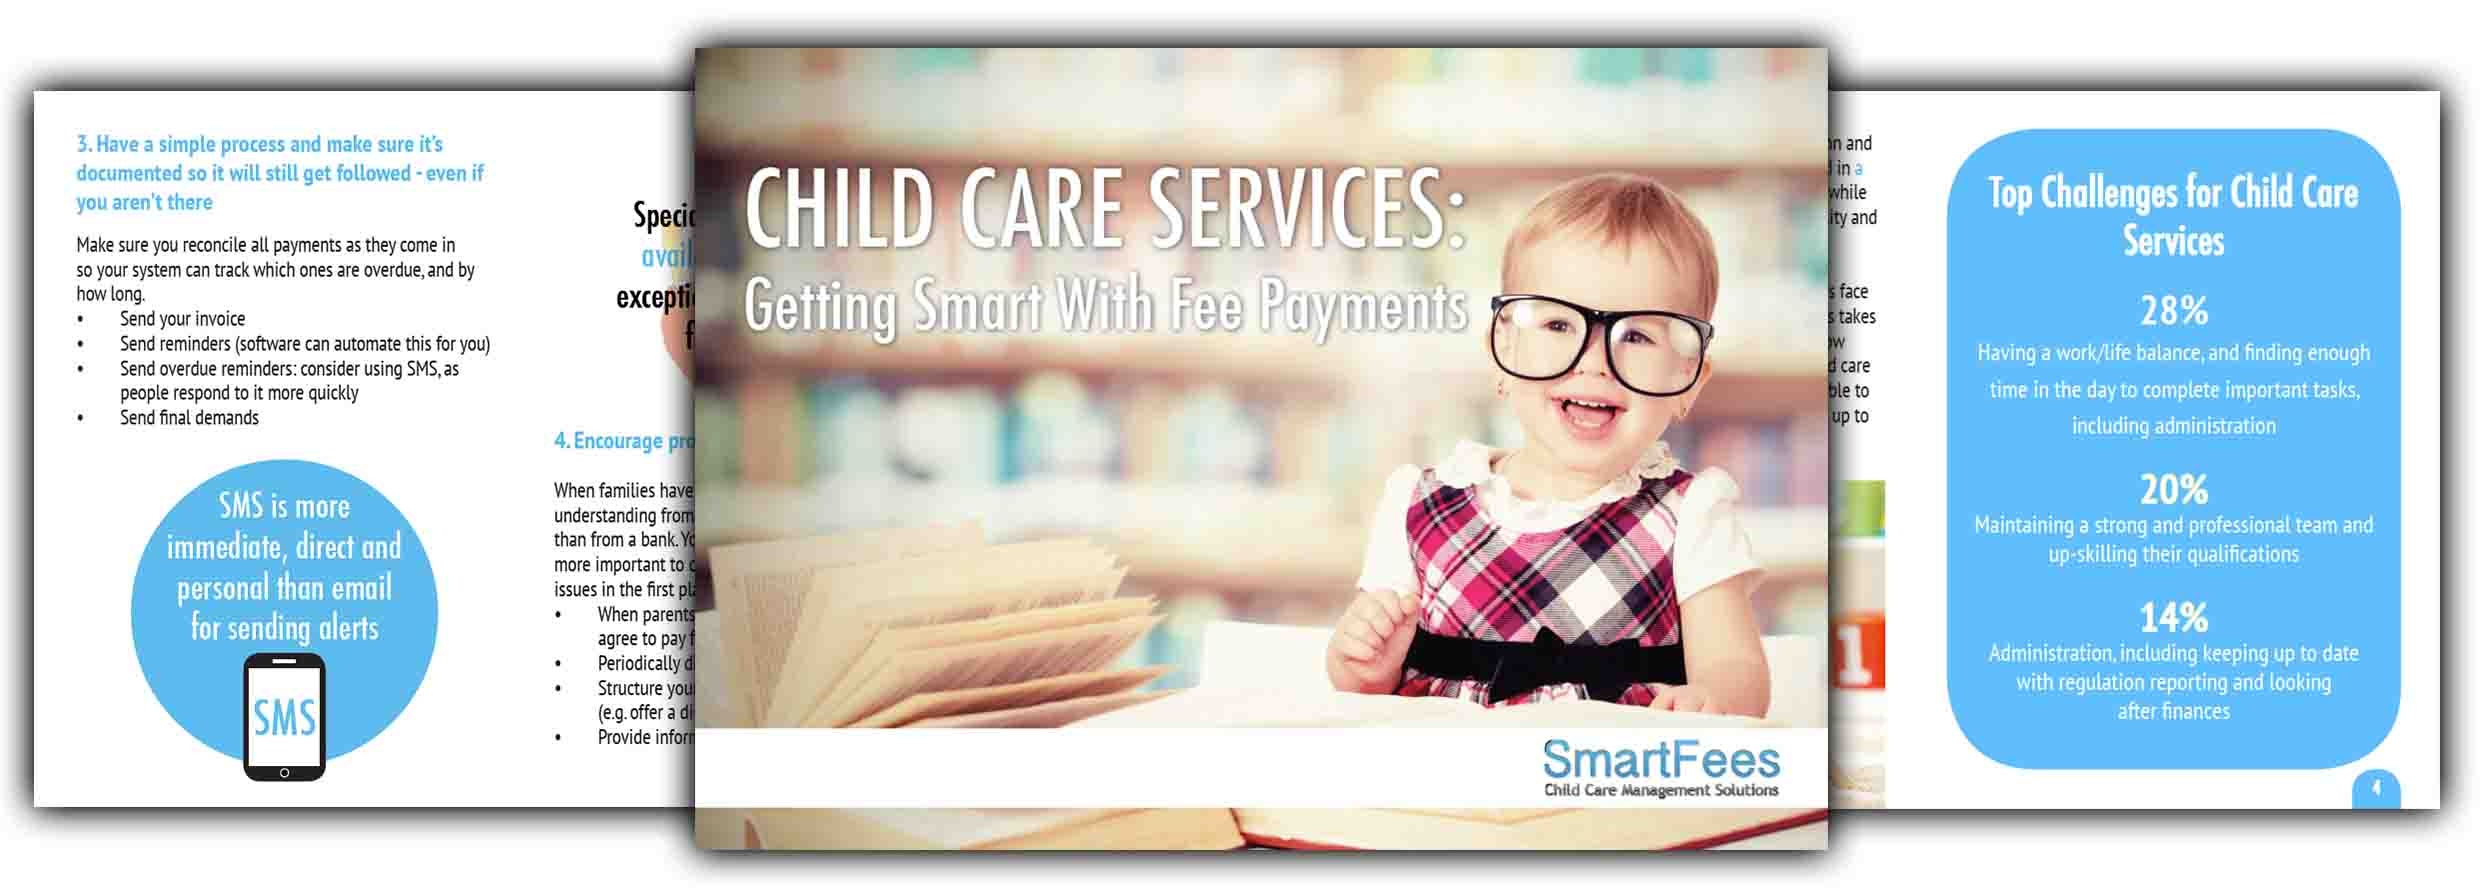 Child_care_services_getting_smart_with_fee_payments